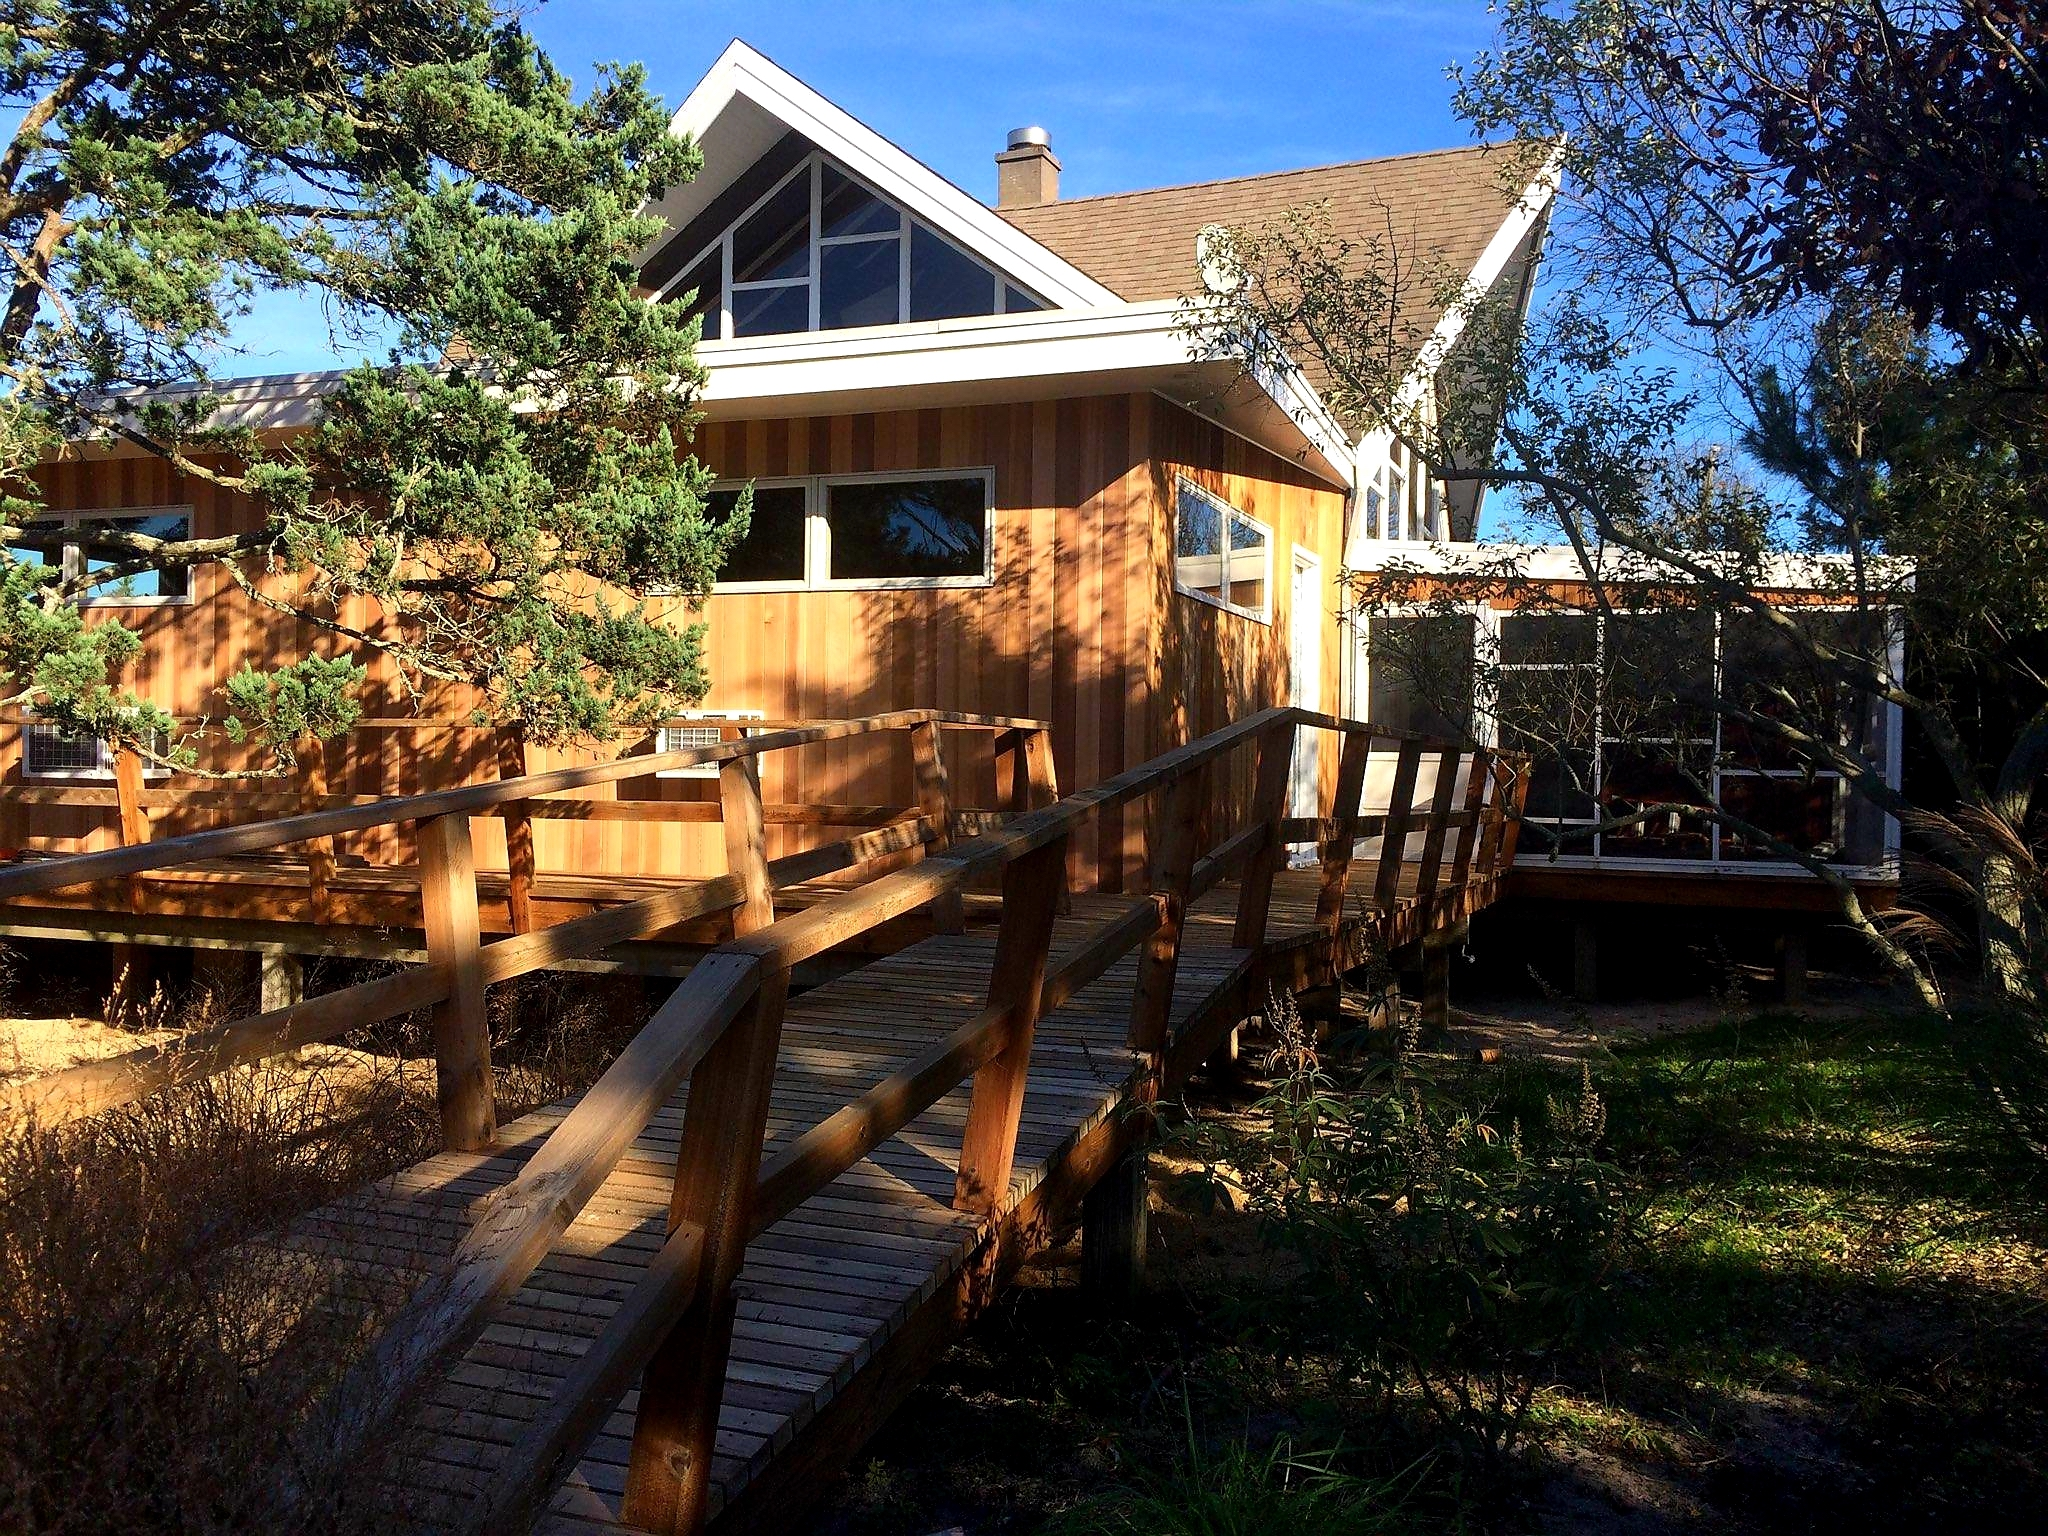 This house has all the space and amenities you need. With five bedrooms (king, 2 queens, 2 bunks), there's plenty of room for your family and guests. In addition to two full bathrooms, there's a delightful enclosed outdoor shower. Two ceiling fans plus air conditioners in every room keep the house cool at night. Kitchen was recently renovated. Large, furnished, front deck plus screened-in porch complete with picnic table. Just off the porch is a shed with a new washer and dryer and storage space for the bikes and beach chairs we'll provide. Plus outdoor grill, WiFi (FiOS), DISH TV, stereo including turntable for your vinyl records. <br> <br> The ocean, bay, tennis courts, basketball court, ball field, market and marina are just a few minutes away. Across the street, you'll find a bay beach, pool, and playground for the kids. The restaurants, shops, and theater are only ten minutes away by bike.